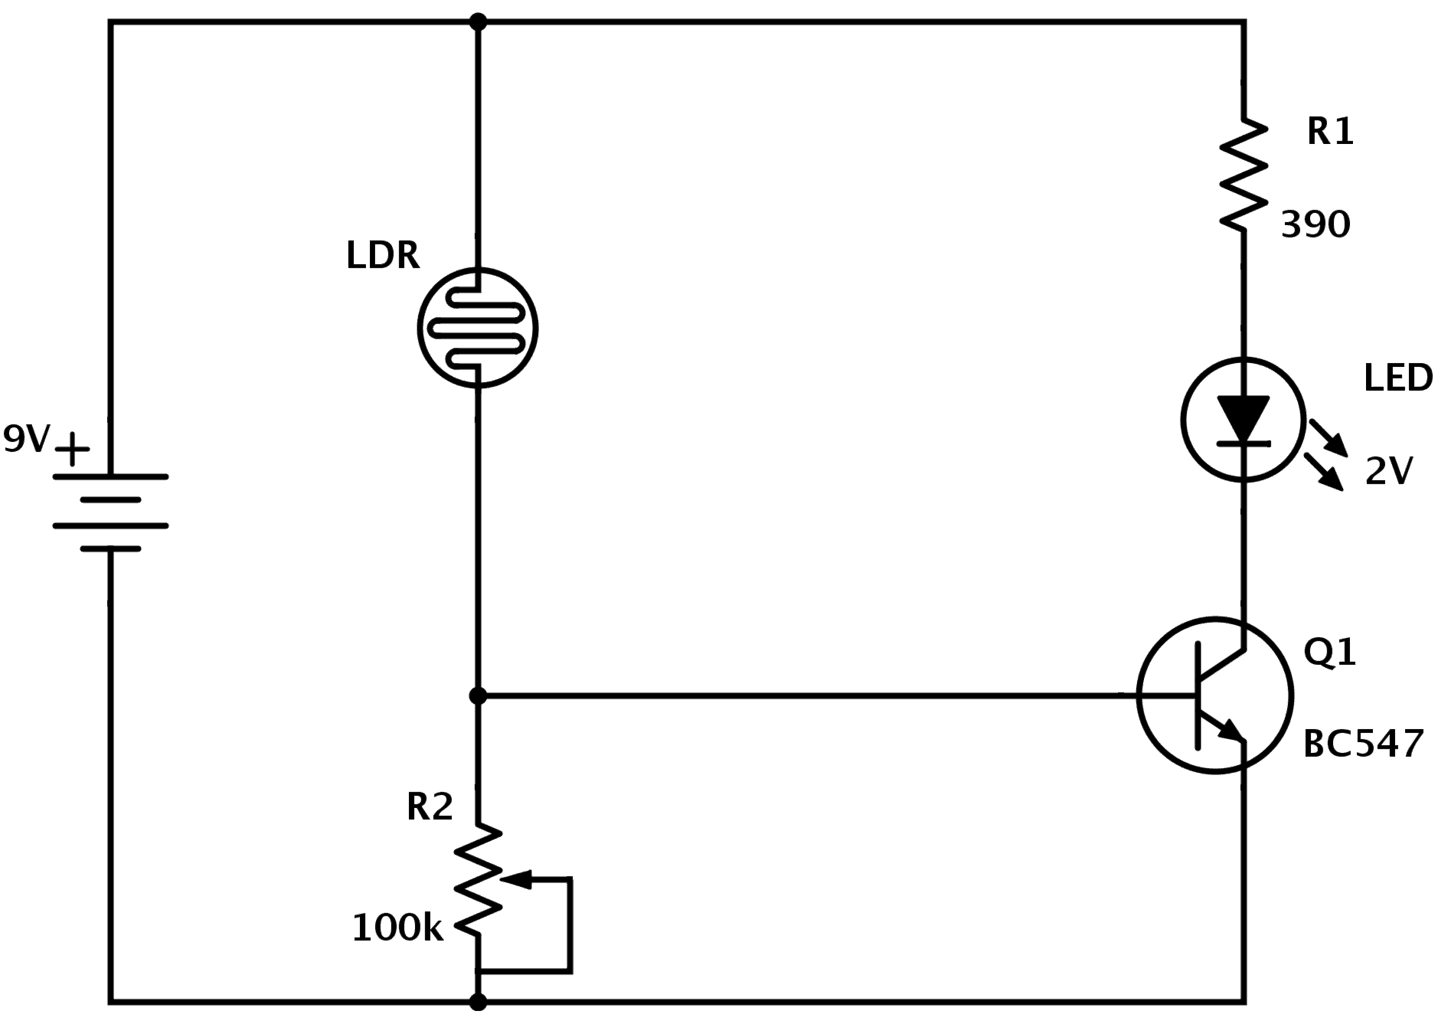 circuit diagram: how to read and understand any schematic, Circuit diagram